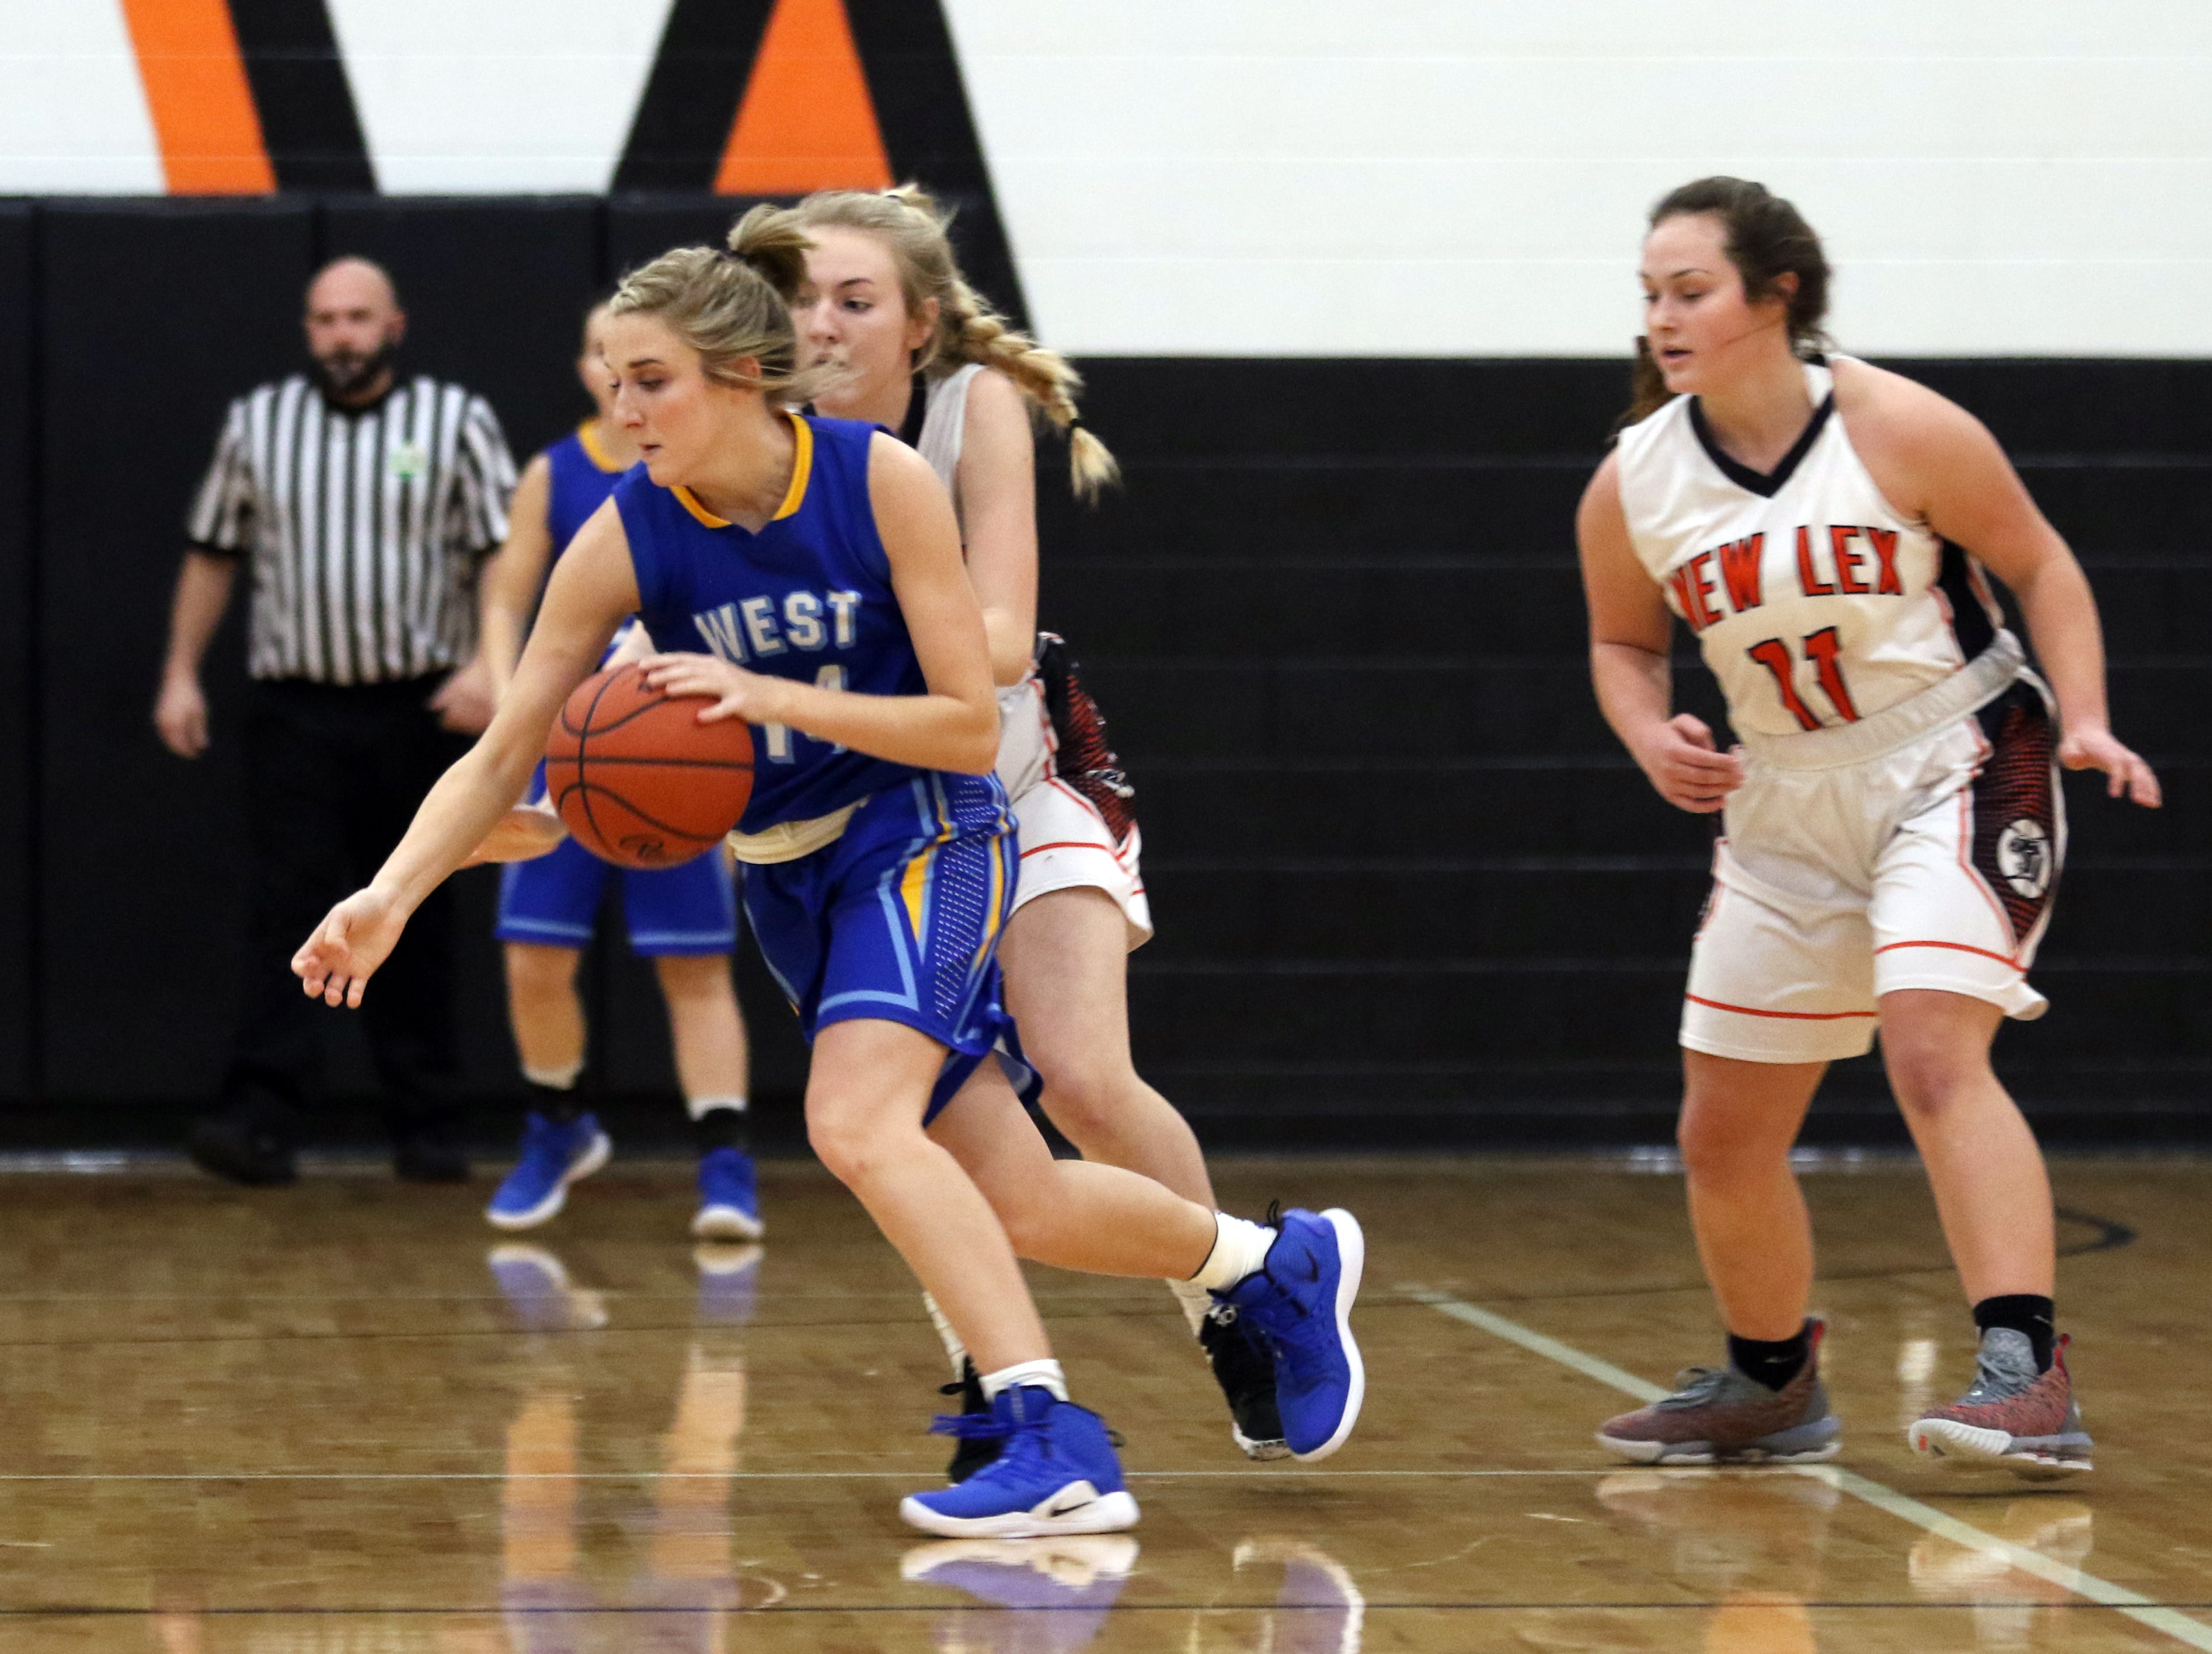 West Muskingum's Hayley Barker moves with the ball against New Lexington.